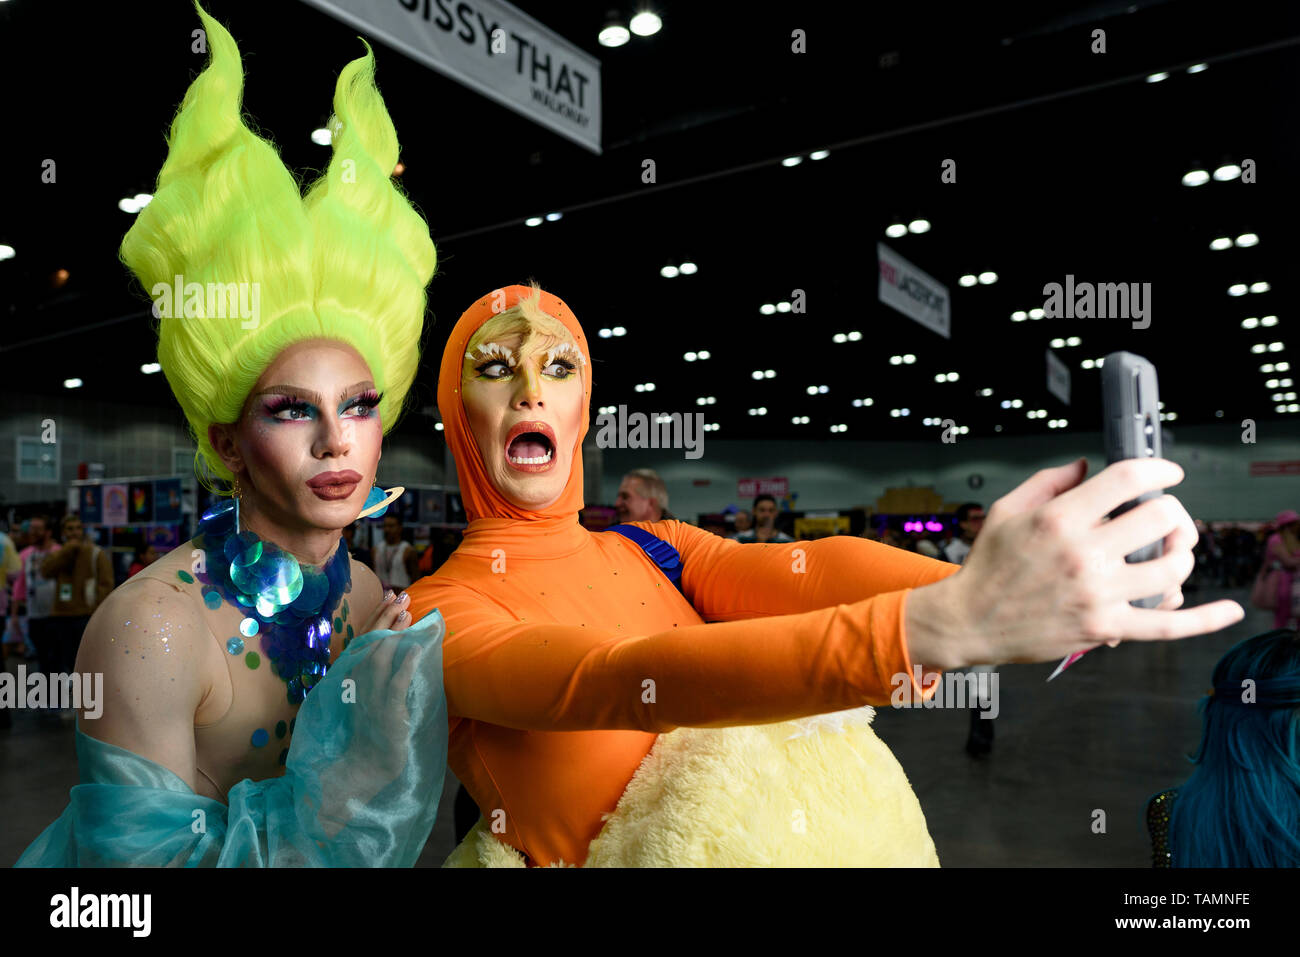 7d8934353a6 Mercury News Stock Photos & Mercury News Stock Images - Alamy